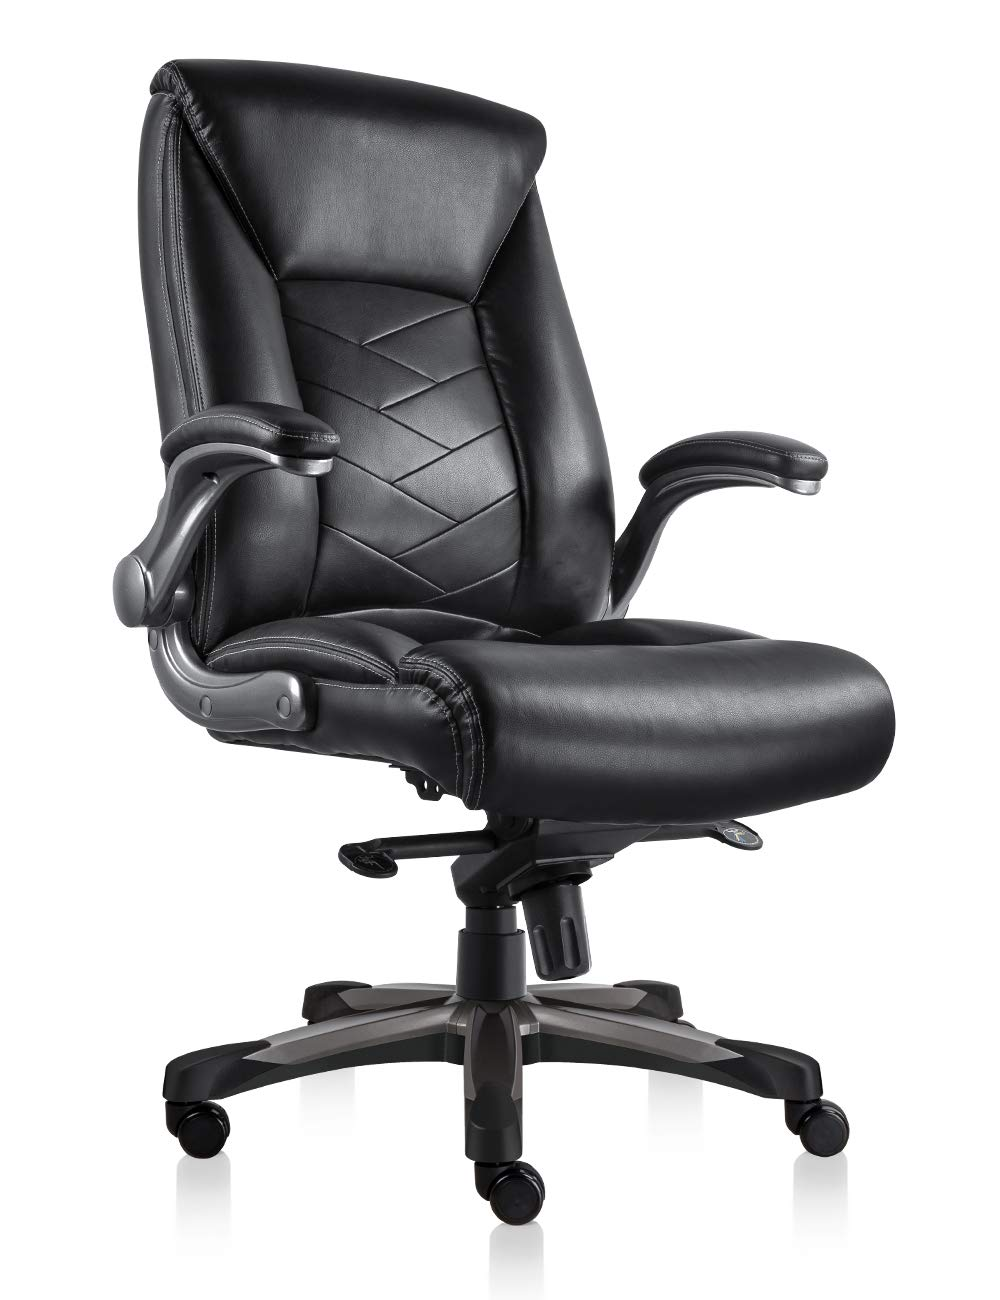 ORVEAY Heavy Duty Executive Office Chair High Back Swivel Office Chair with Comfortable Flip up Armrest Bonded PU Leather Home Office Chair(Black) by ORVEAY